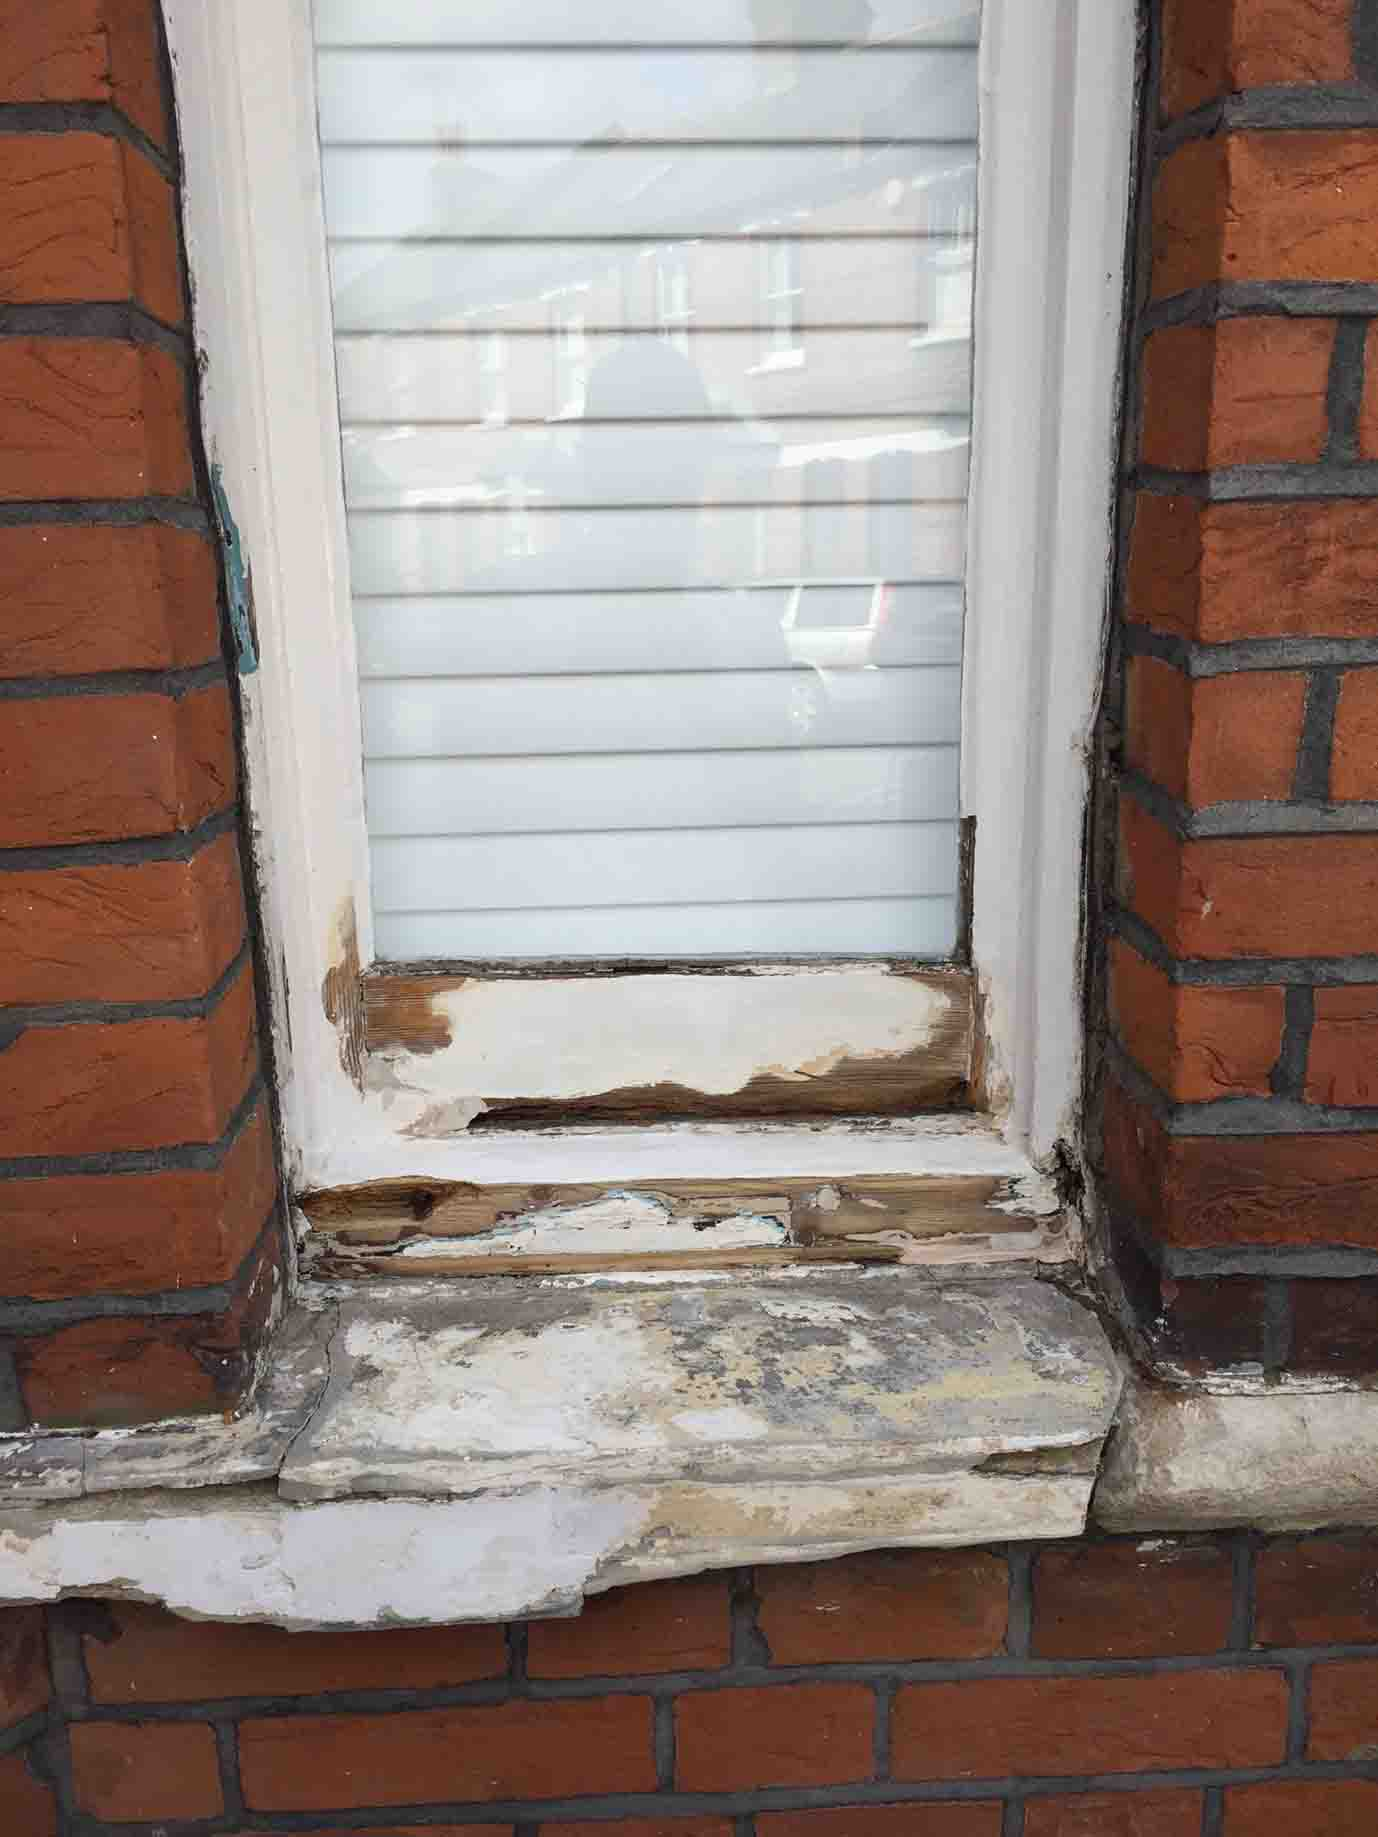 rotted and unpainted windowframe